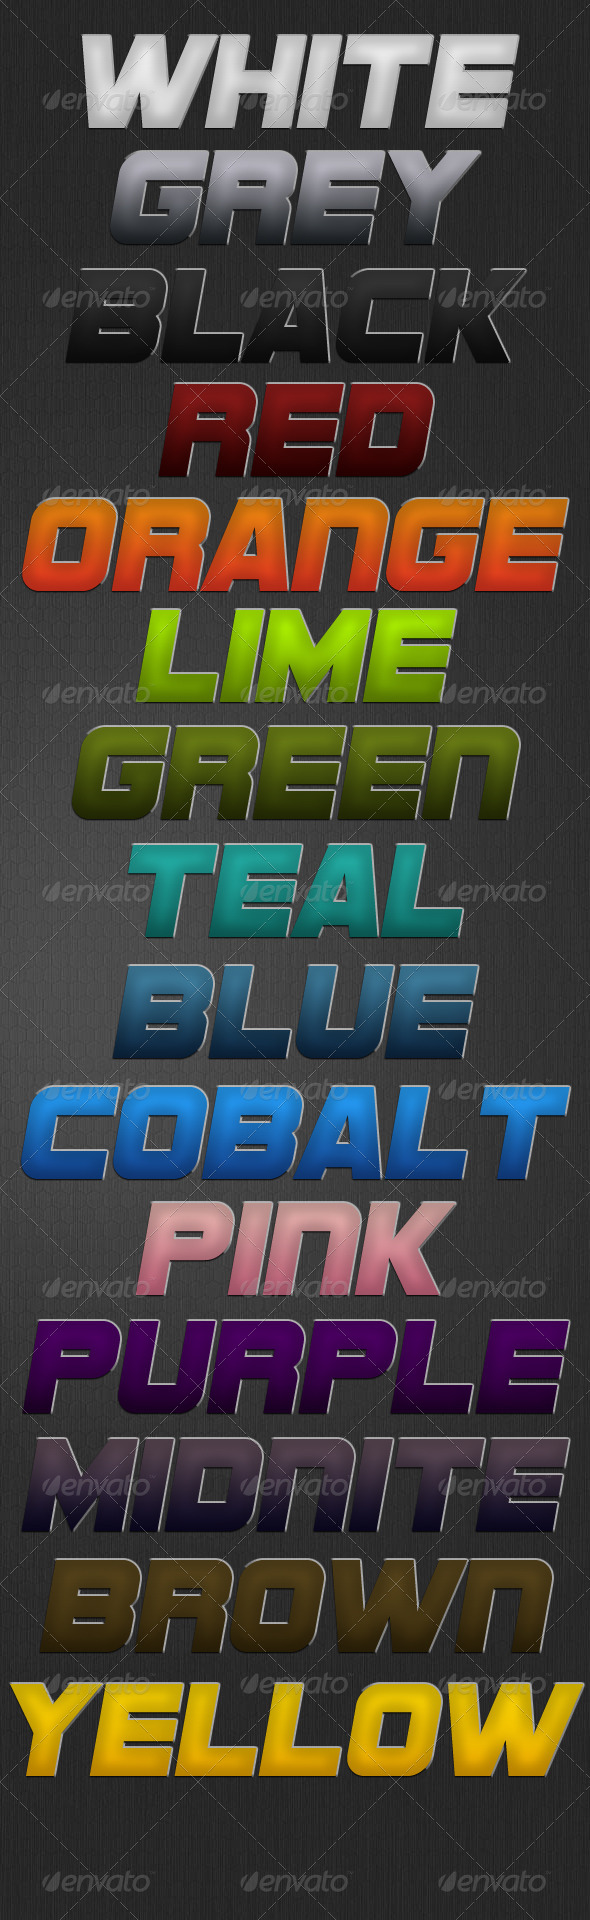 Soft Touch Style - Text Effects Styles